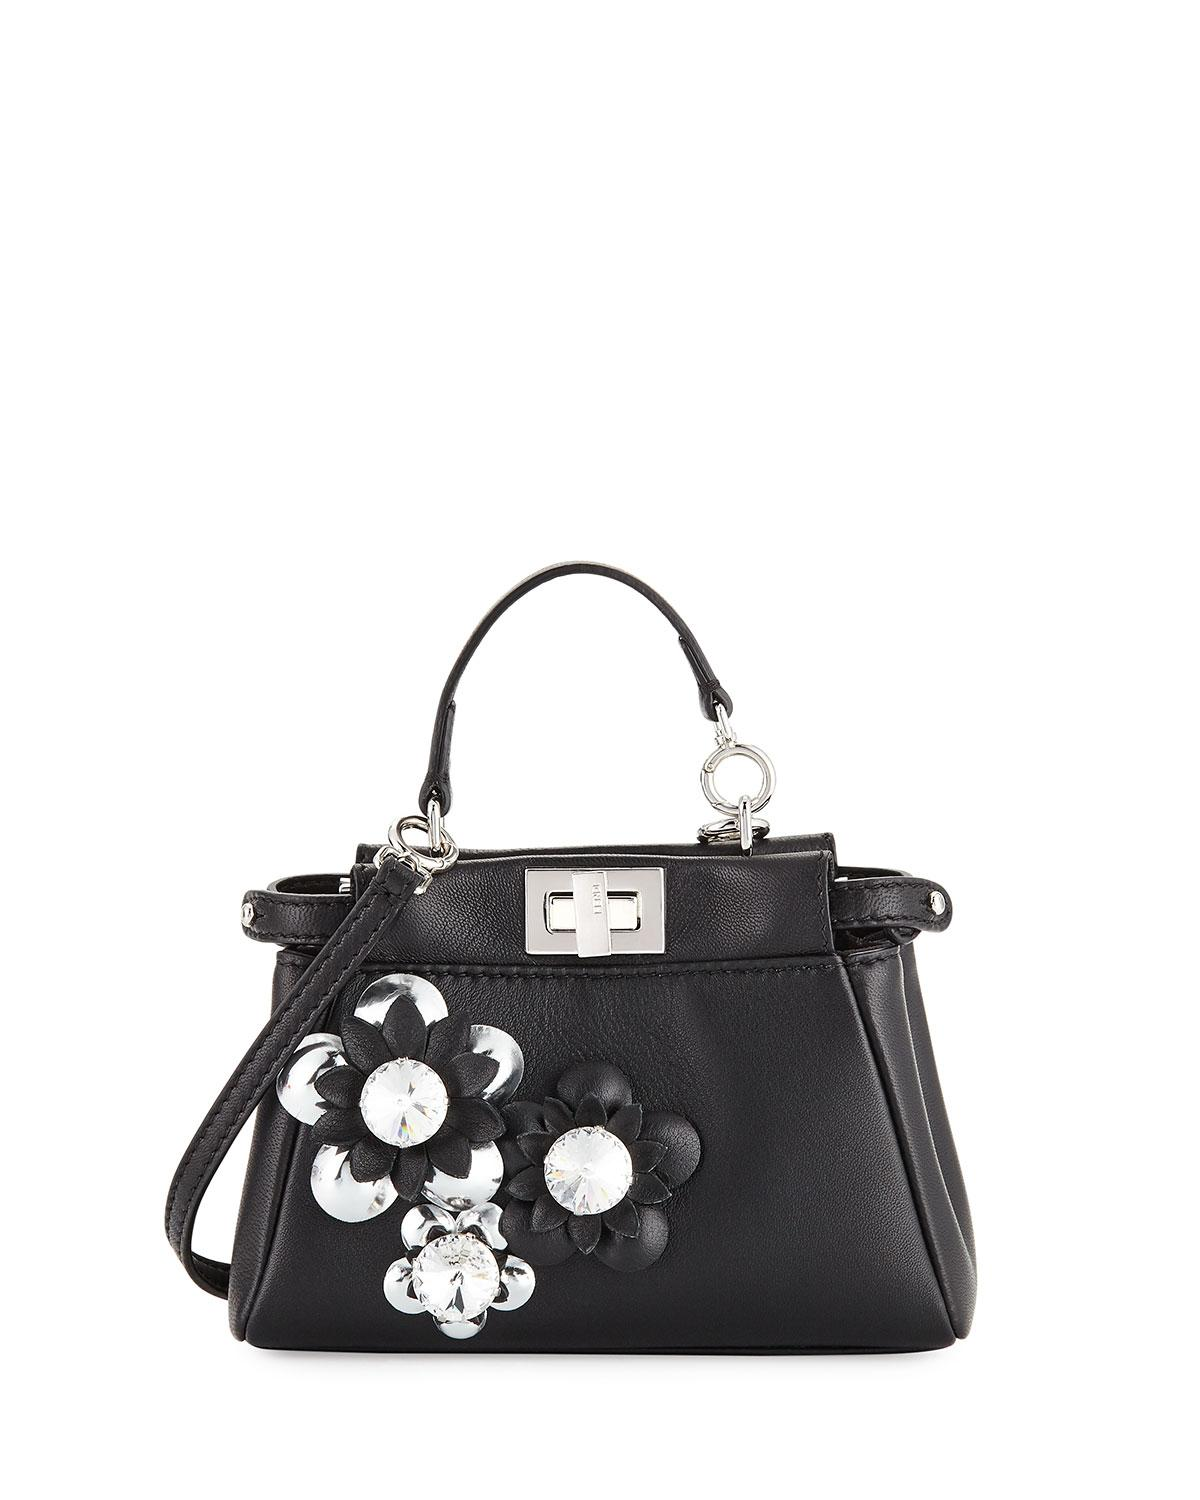 Lyst - Fendi Peekaboo Micro Flower Satchel Bag Nero argento in Black 28f7bc016788e